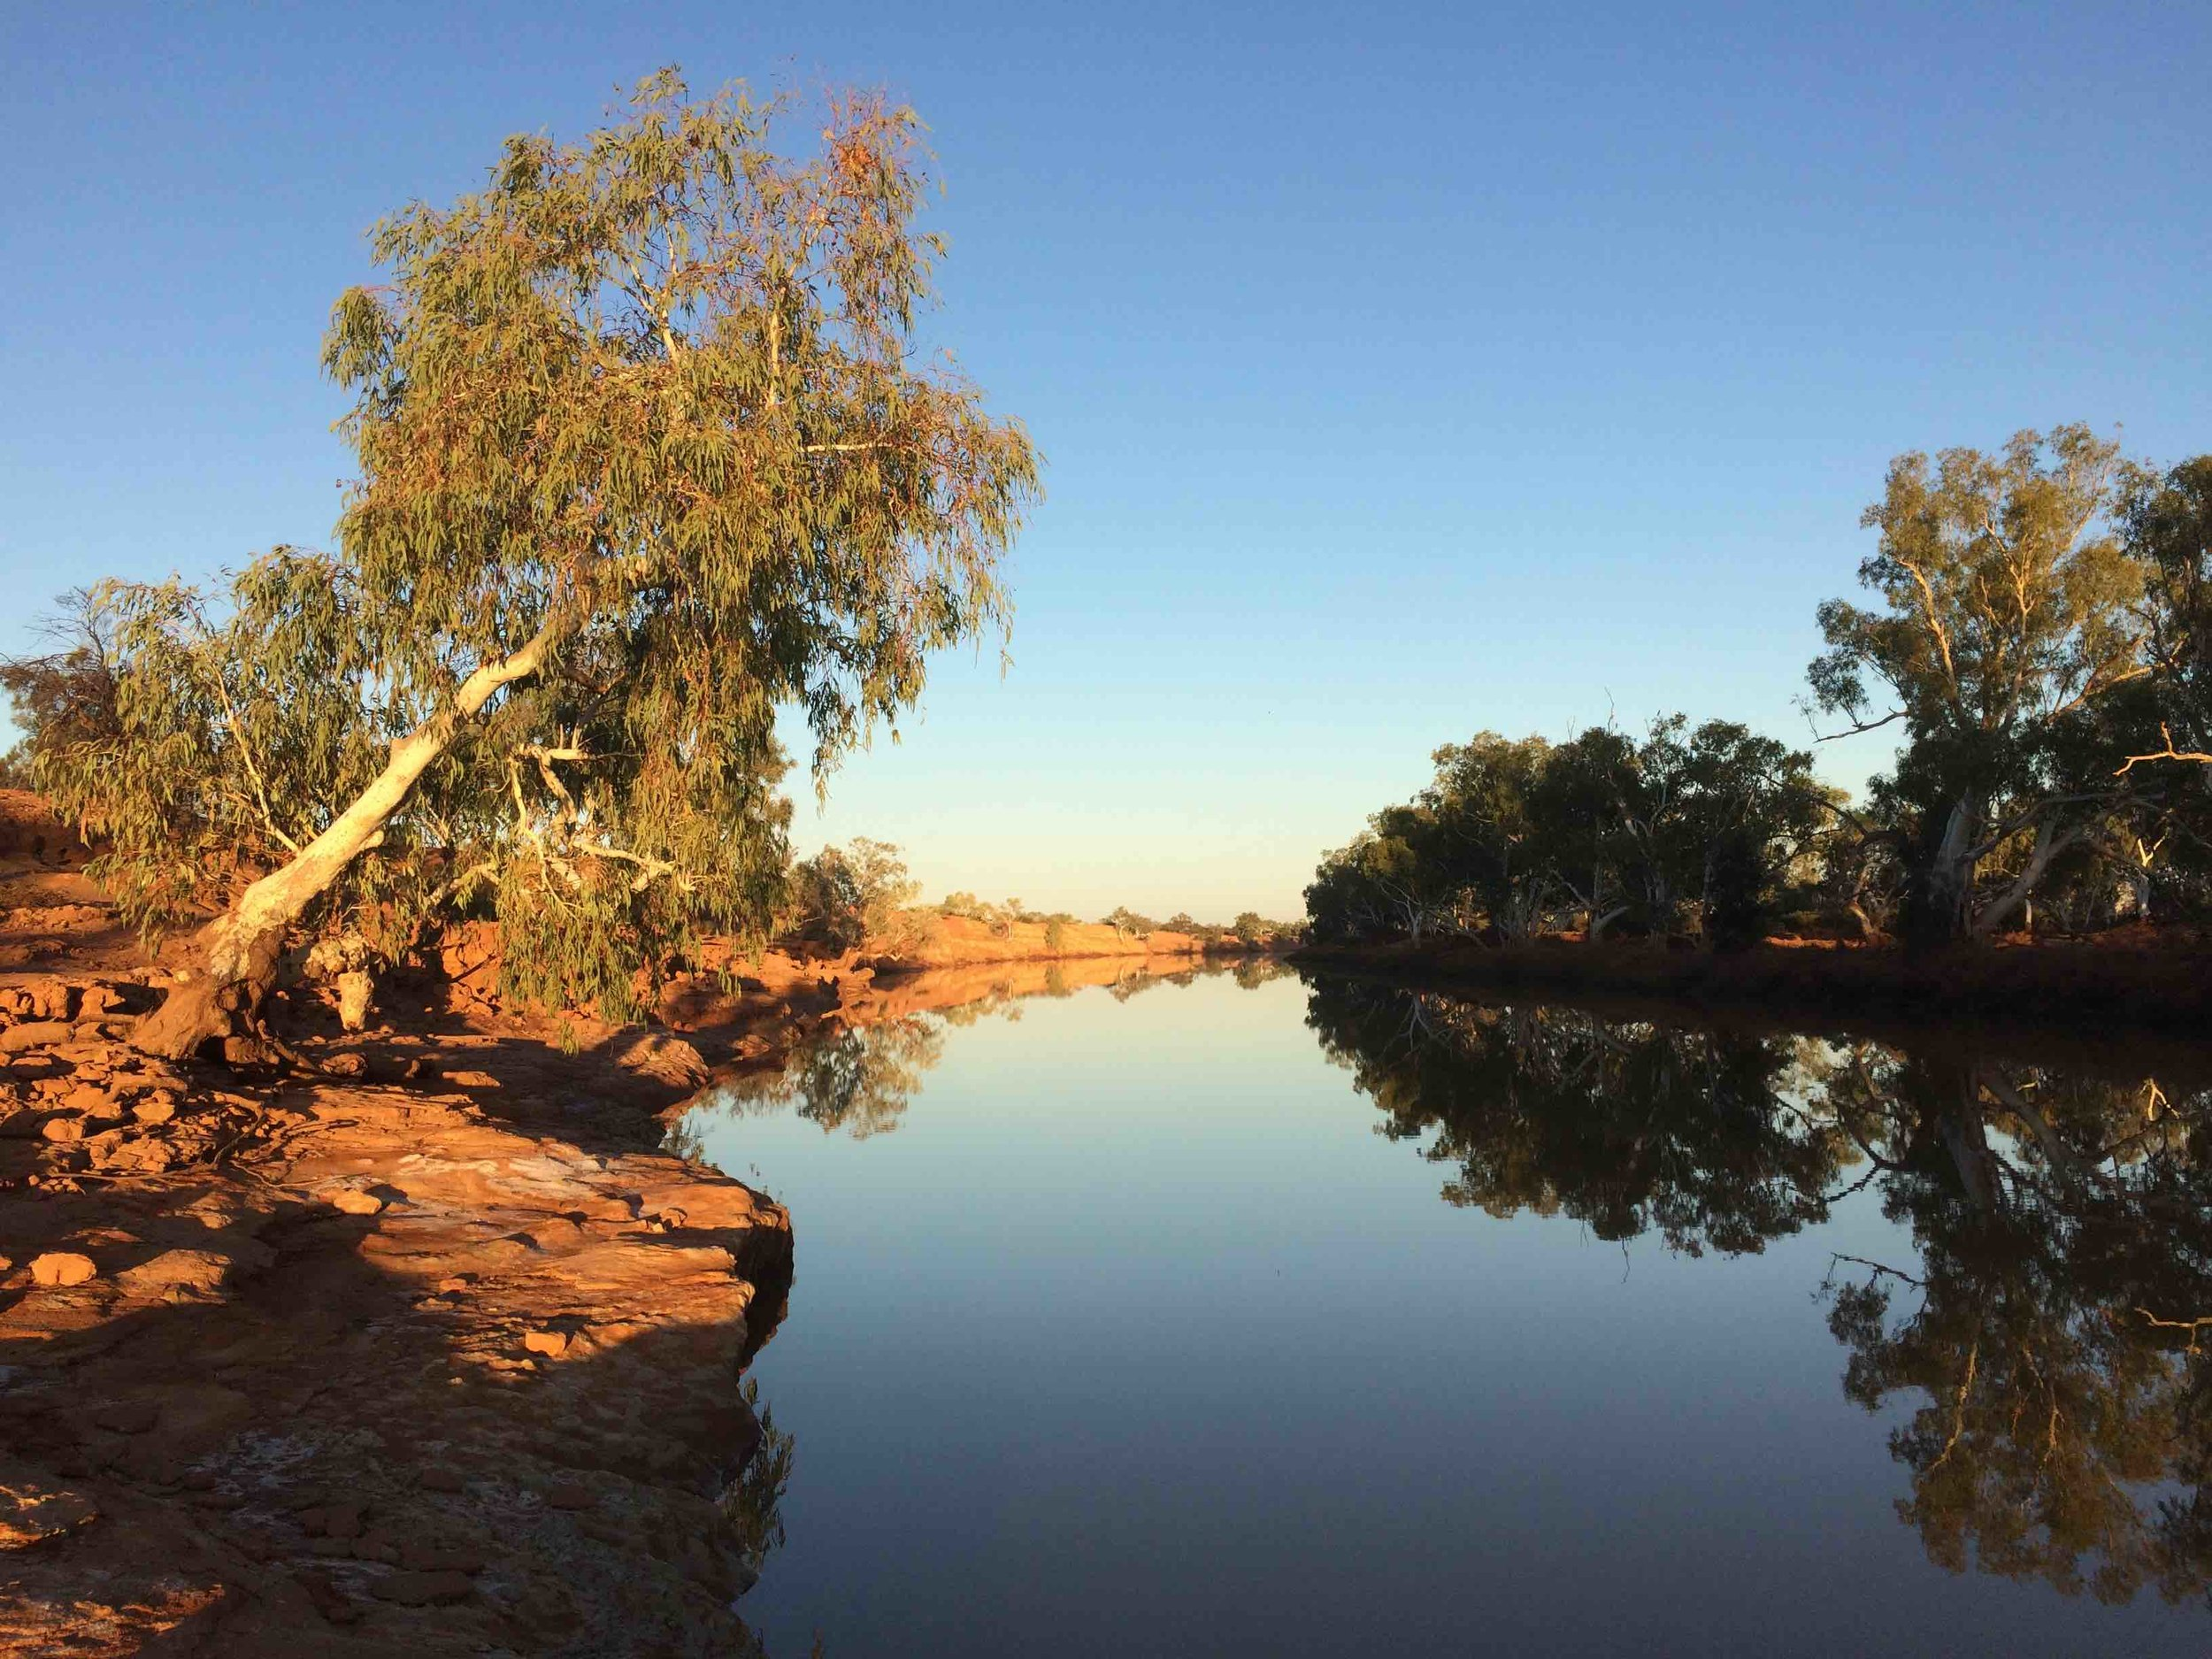 The Murchison River at Wooleen Station.